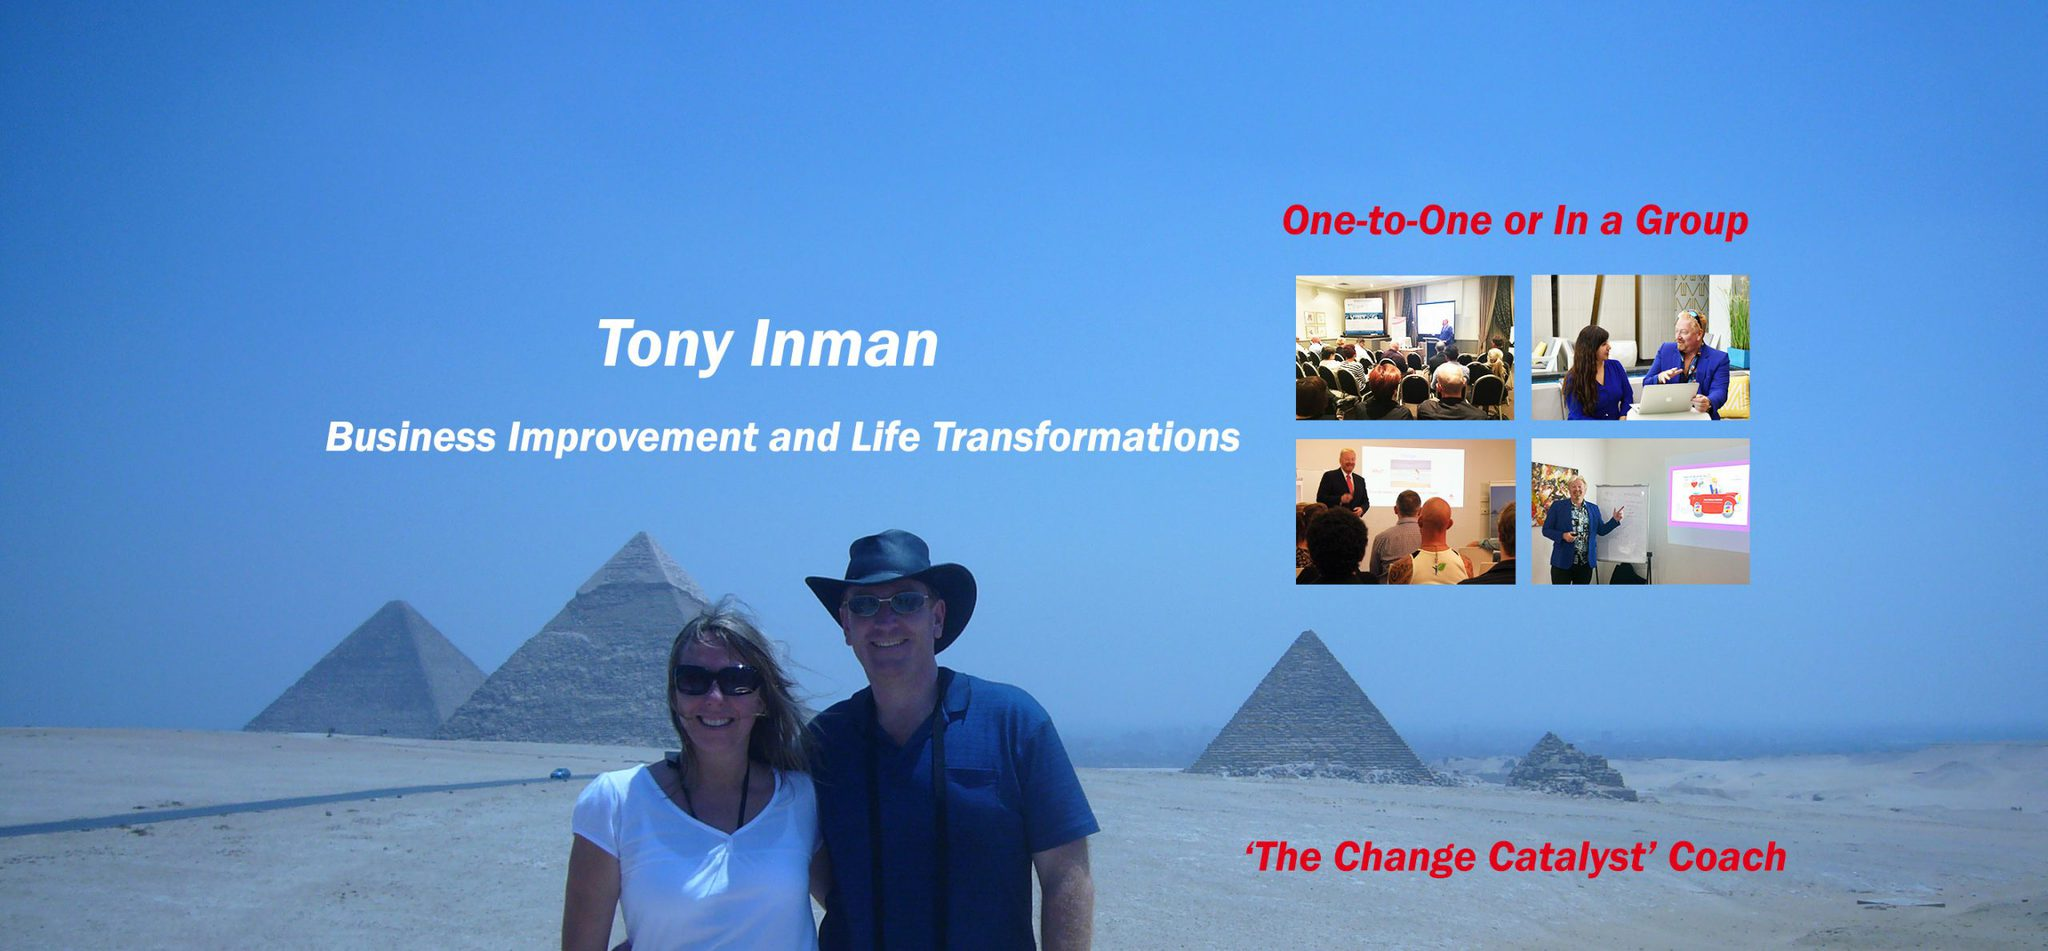 Business Mentor and Life Coach Tony Inman can help you grow your business and transform your life